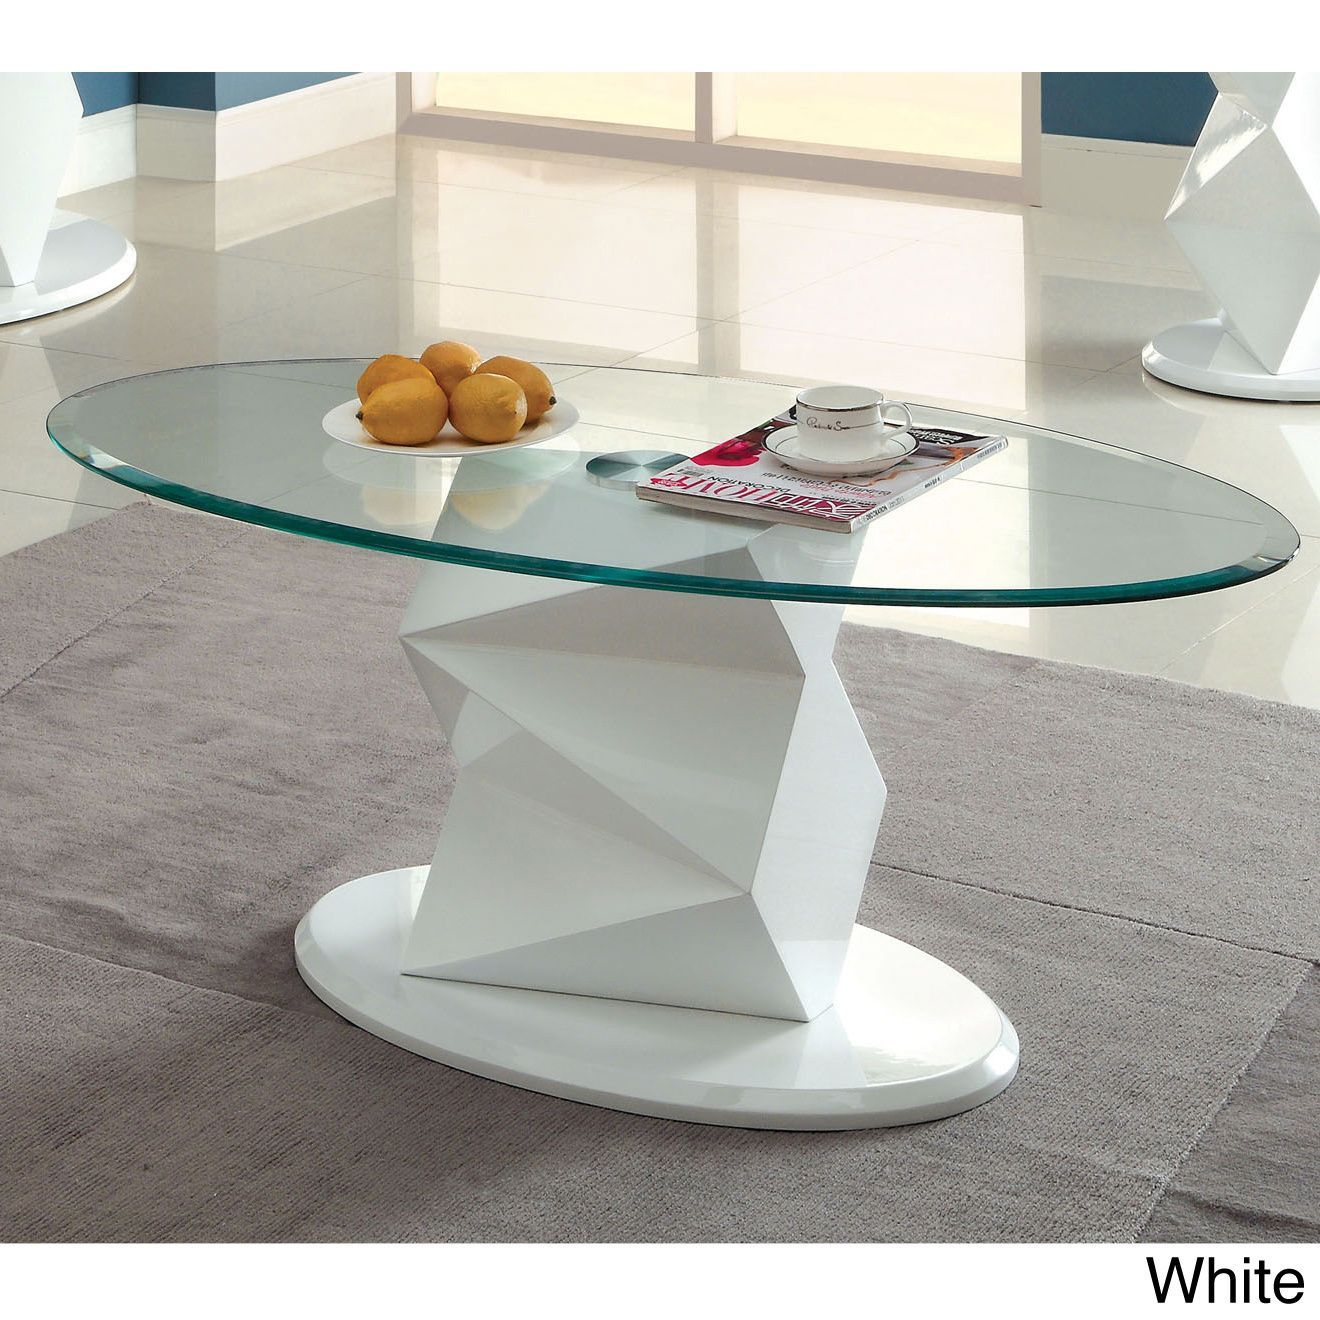 Furniture Of America Halawa Coffee Table Halawa Coffee TableContemporary  Style Pedestal TableHigh Gloss Lacquer Tempered Glass Top